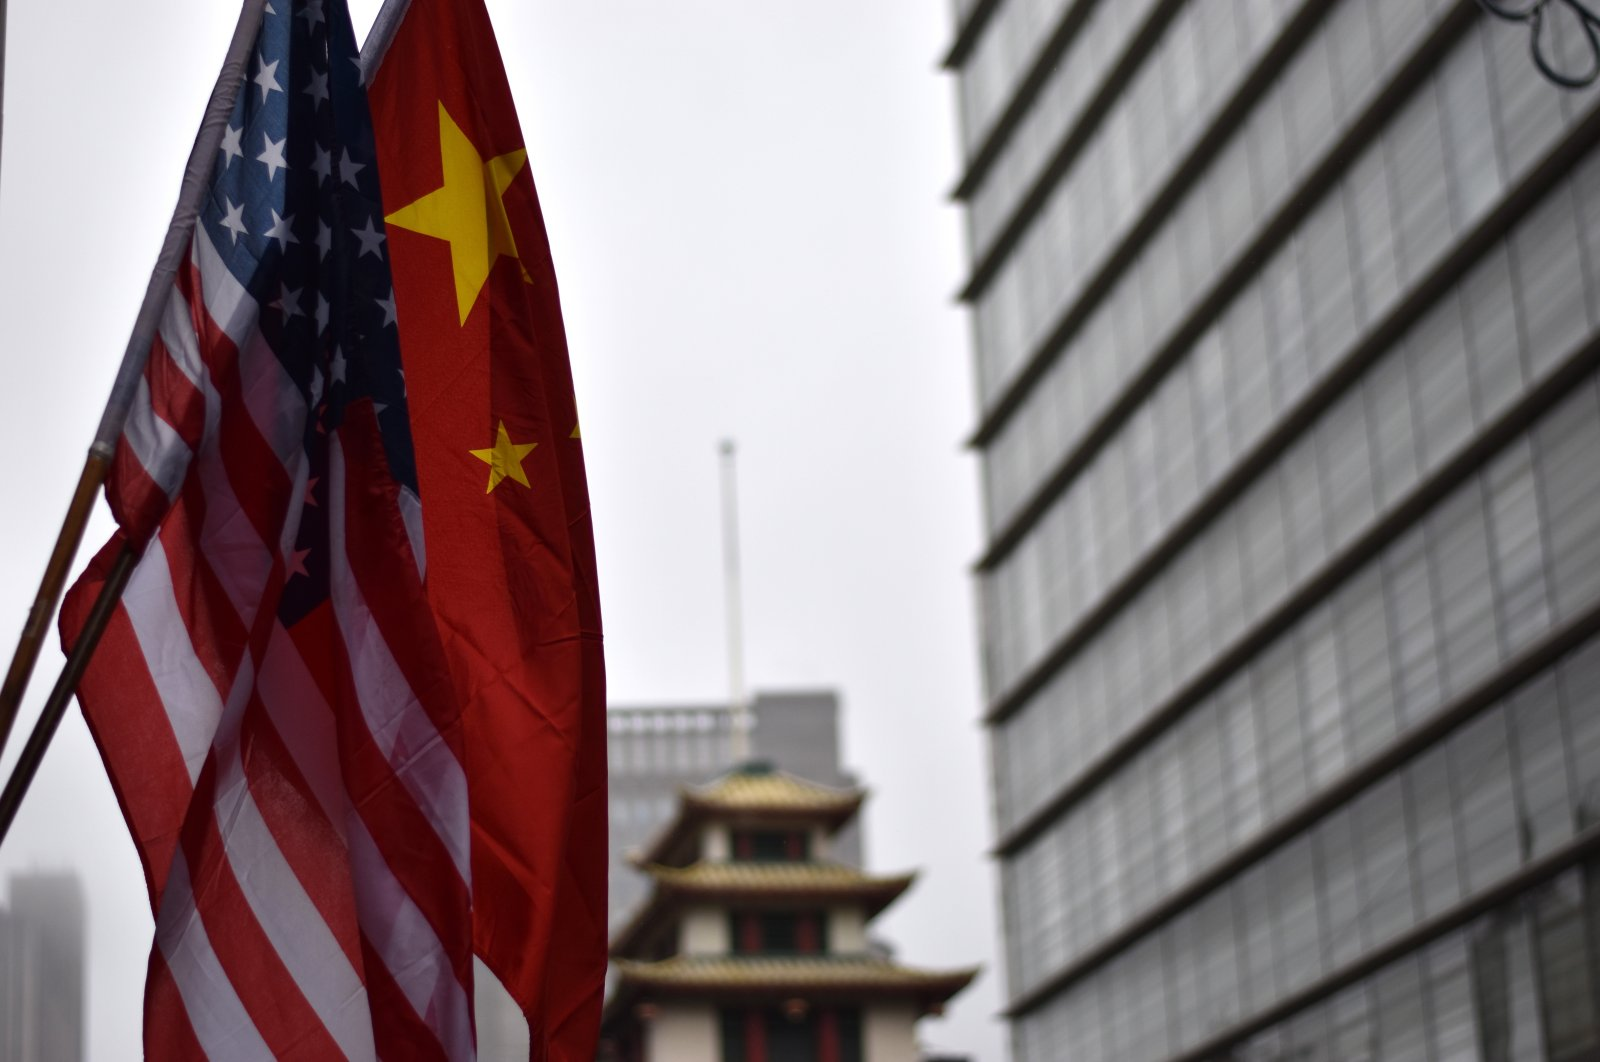 The flags of the U.S. and China hang on a building in a Chinatown in New York City, U.S., Feb. 25, 2018. (Photo by Shutterstock)